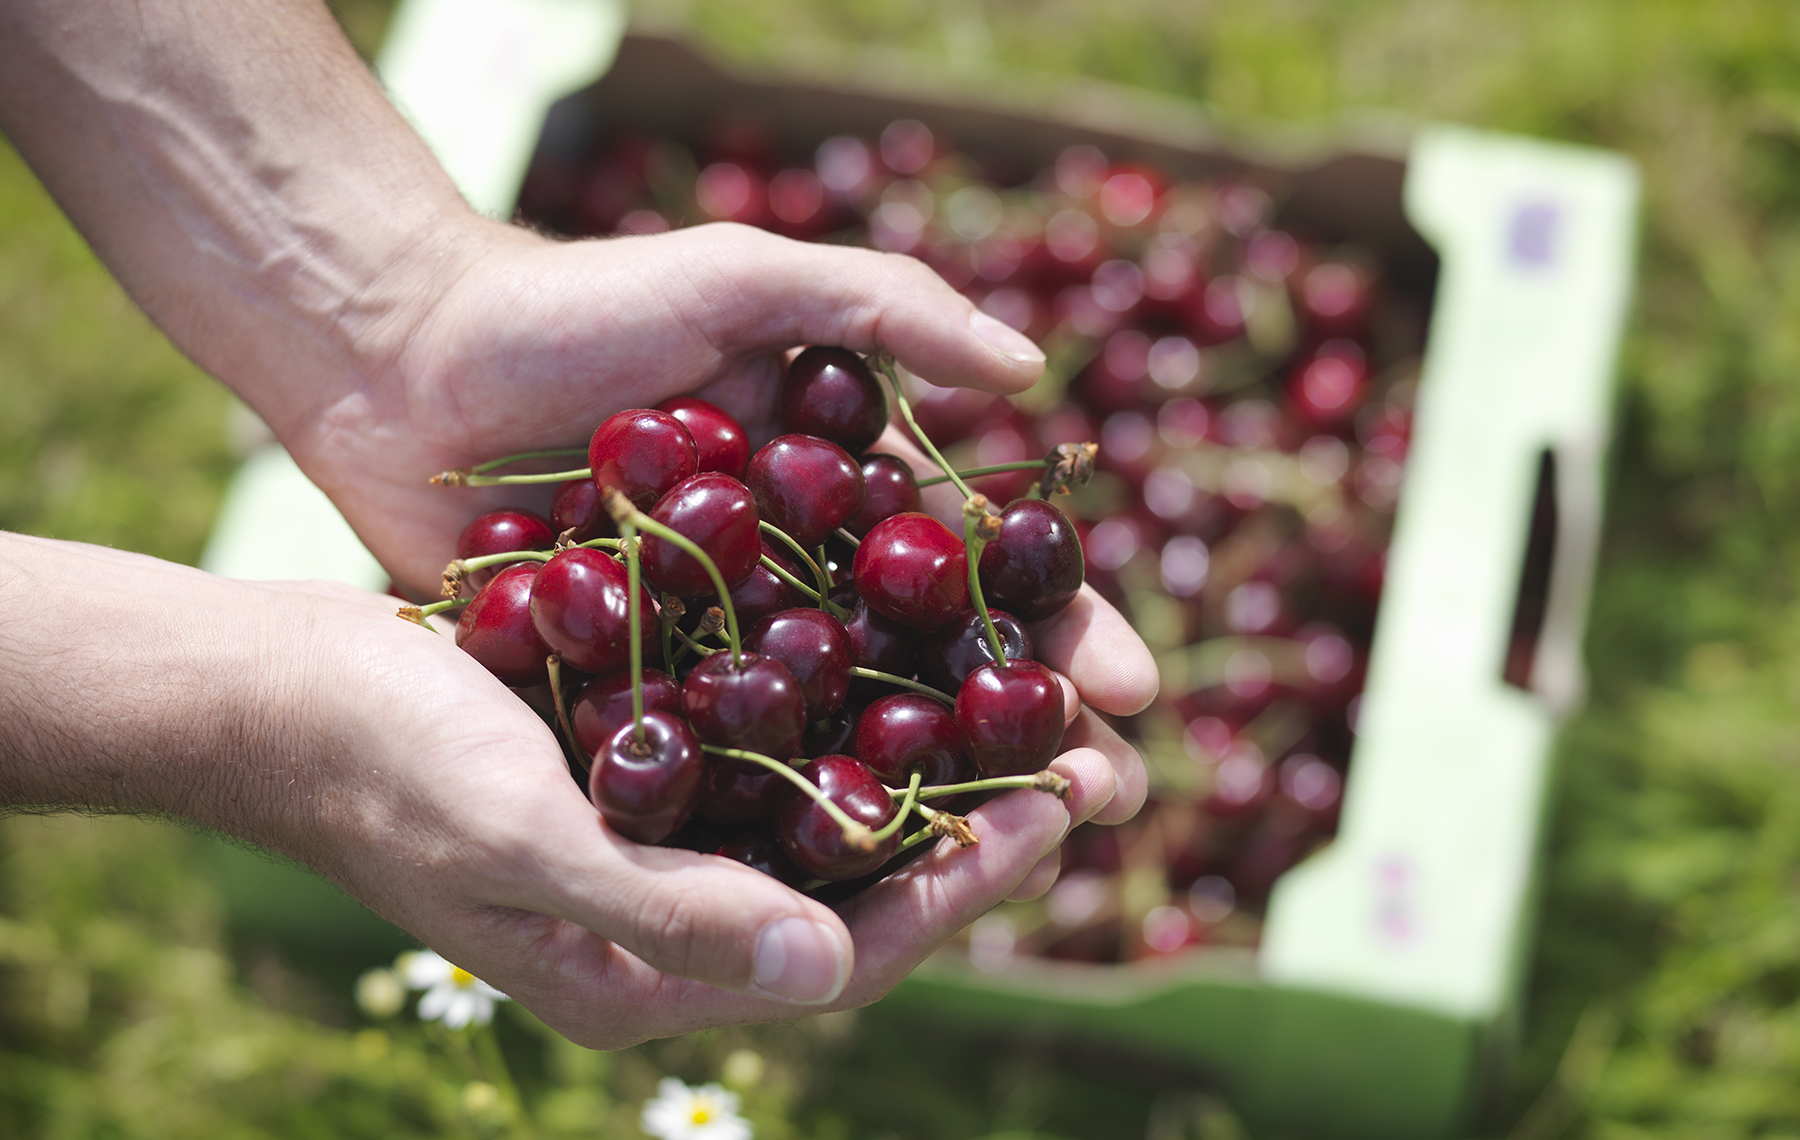 Man hands holding a bunch of cherries and a box of cherries behind